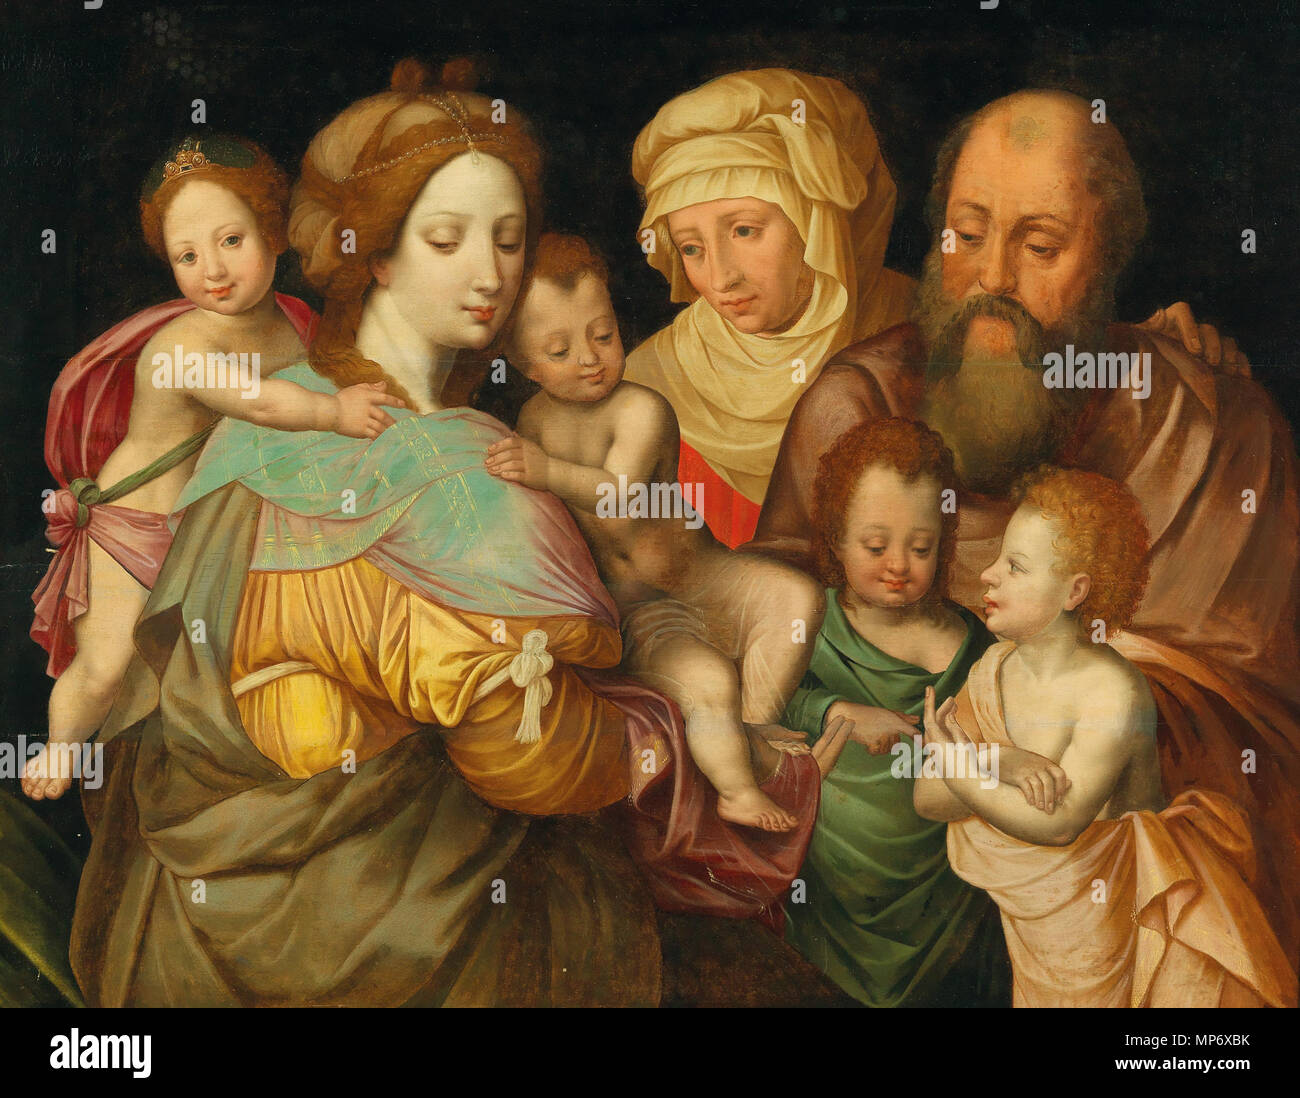 The Holy Kinship, Anna and Joachim with Maria Cleophas and her four sons   16th century.   1175 The Holy Kinship, Anna and Joachim with Maria Cleophas and her four sons - Stock Image